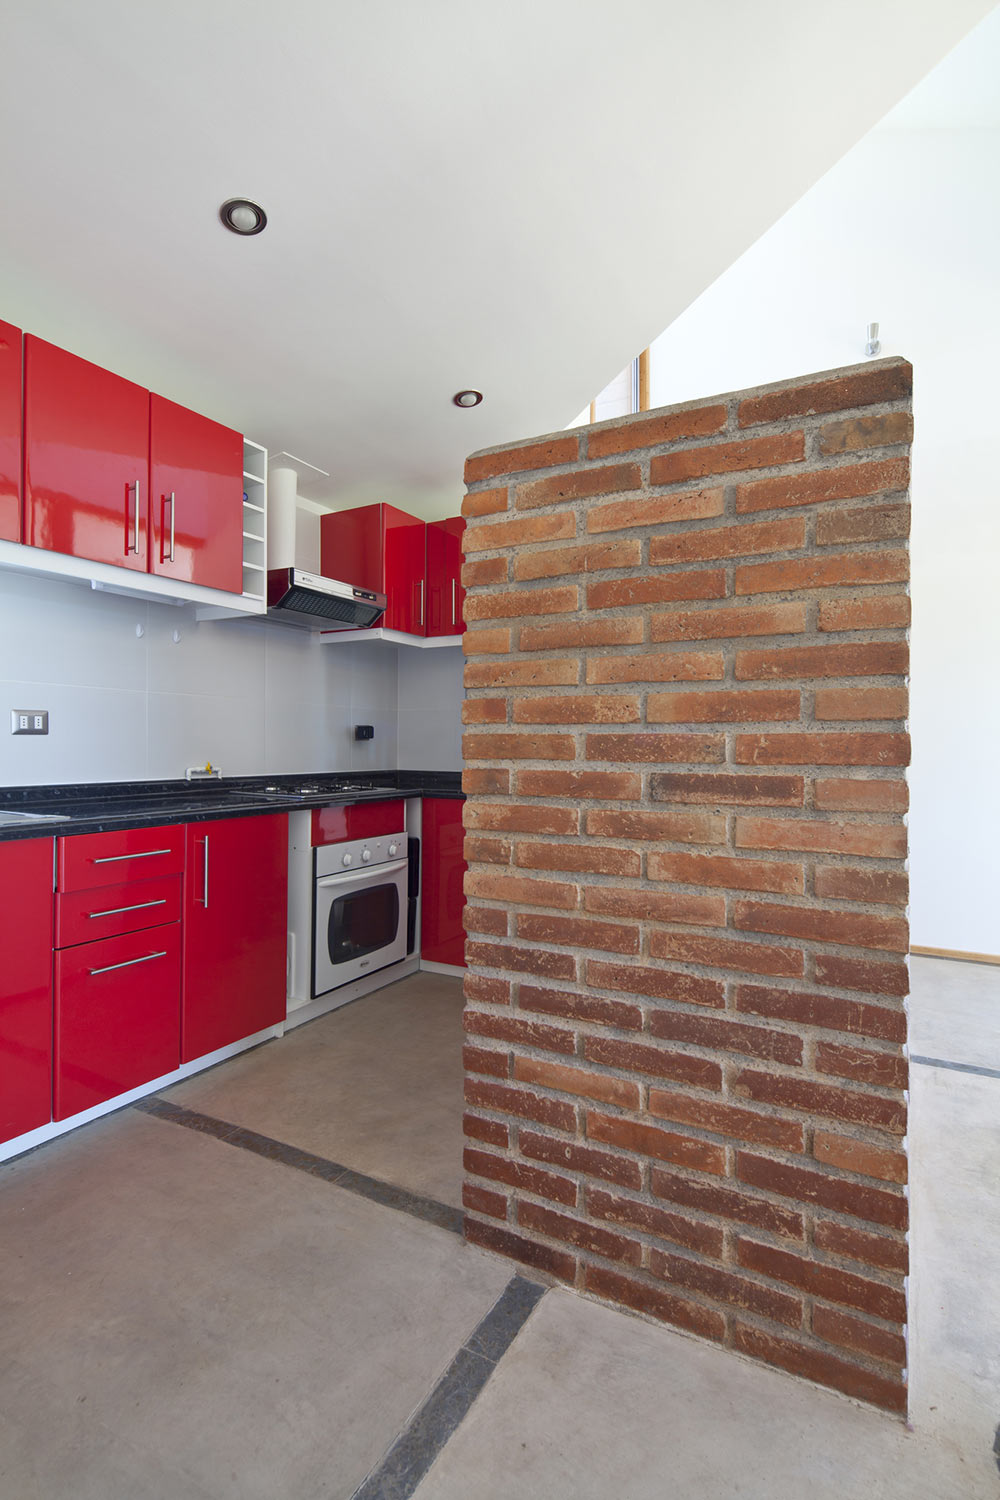 Red Kitchen, Home in Chile with Japanese Influences